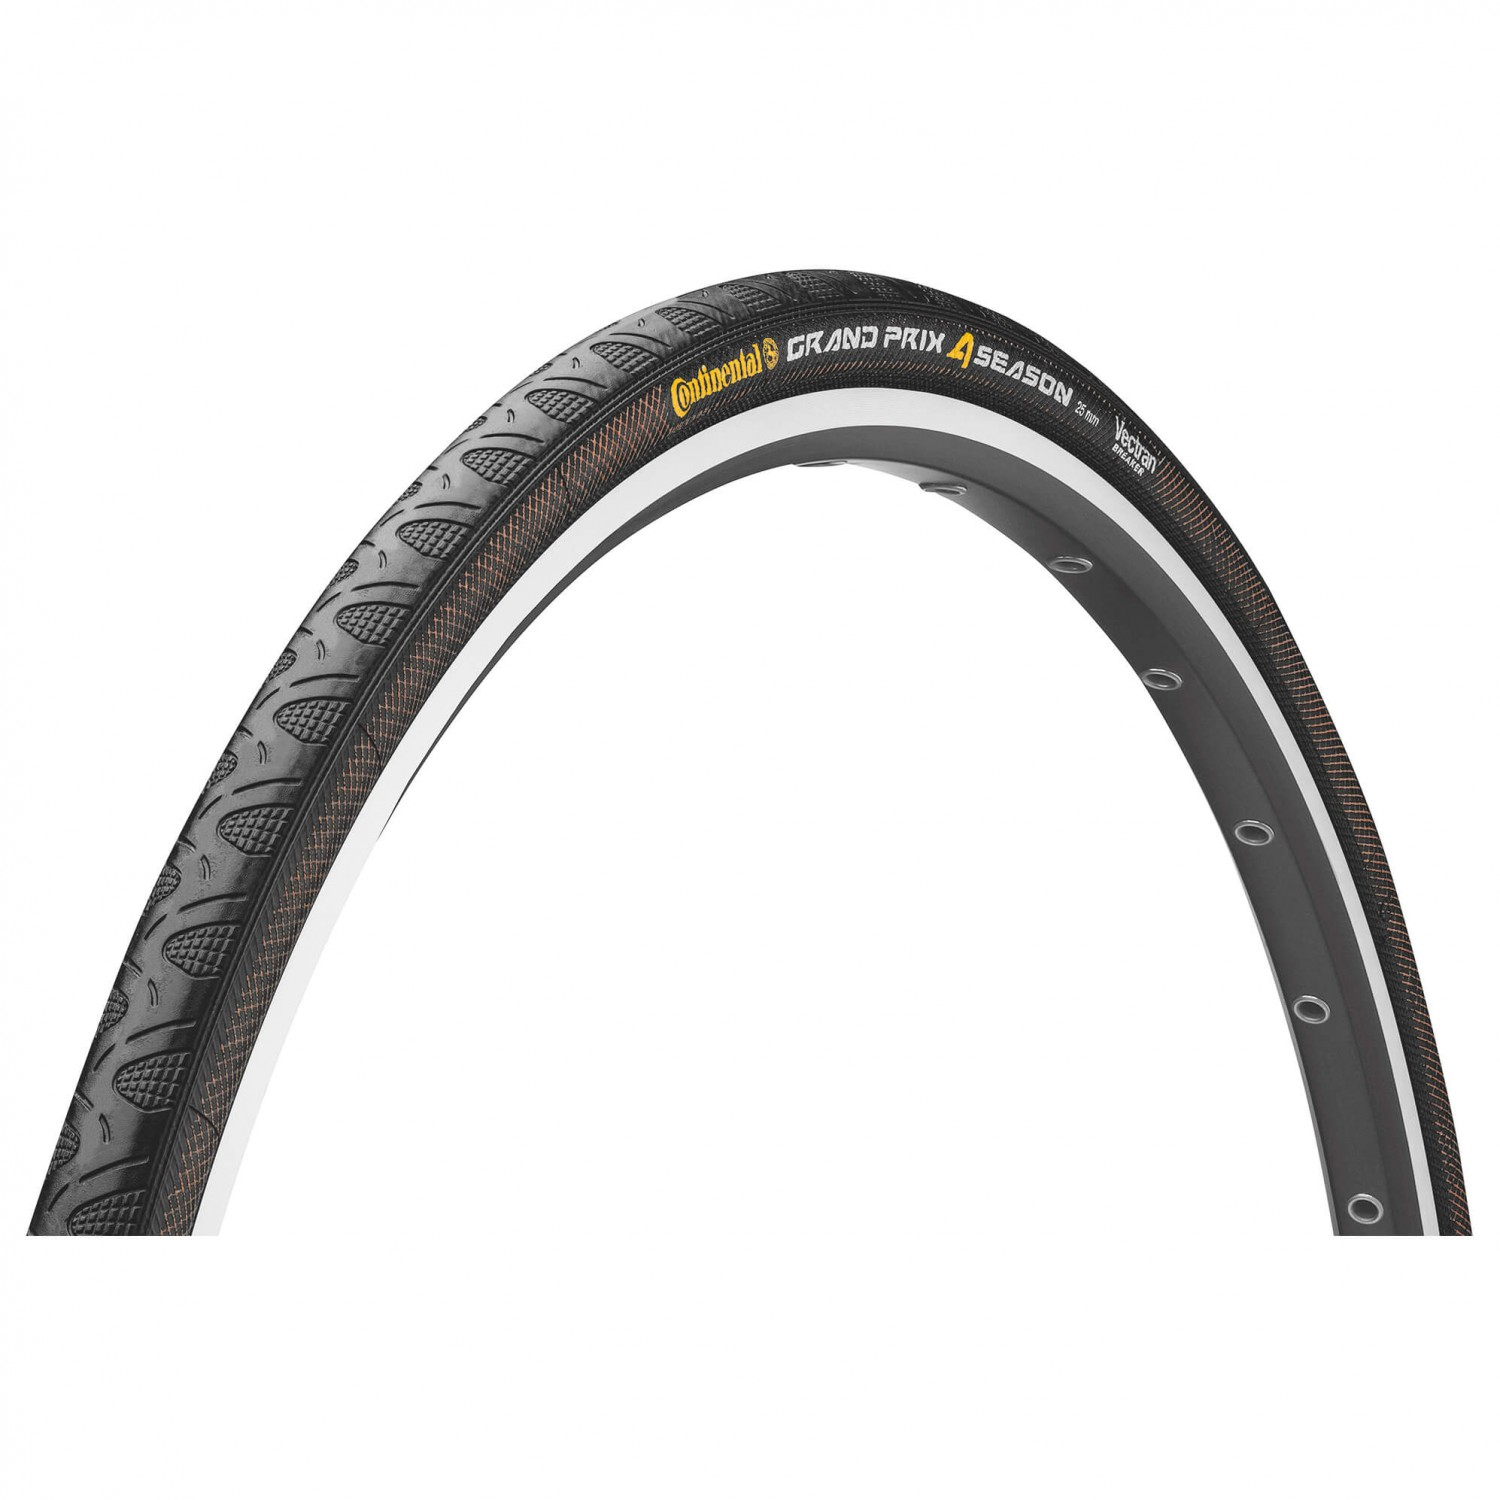 continental grand prix 4 season faltreifen bike tires. Black Bedroom Furniture Sets. Home Design Ideas